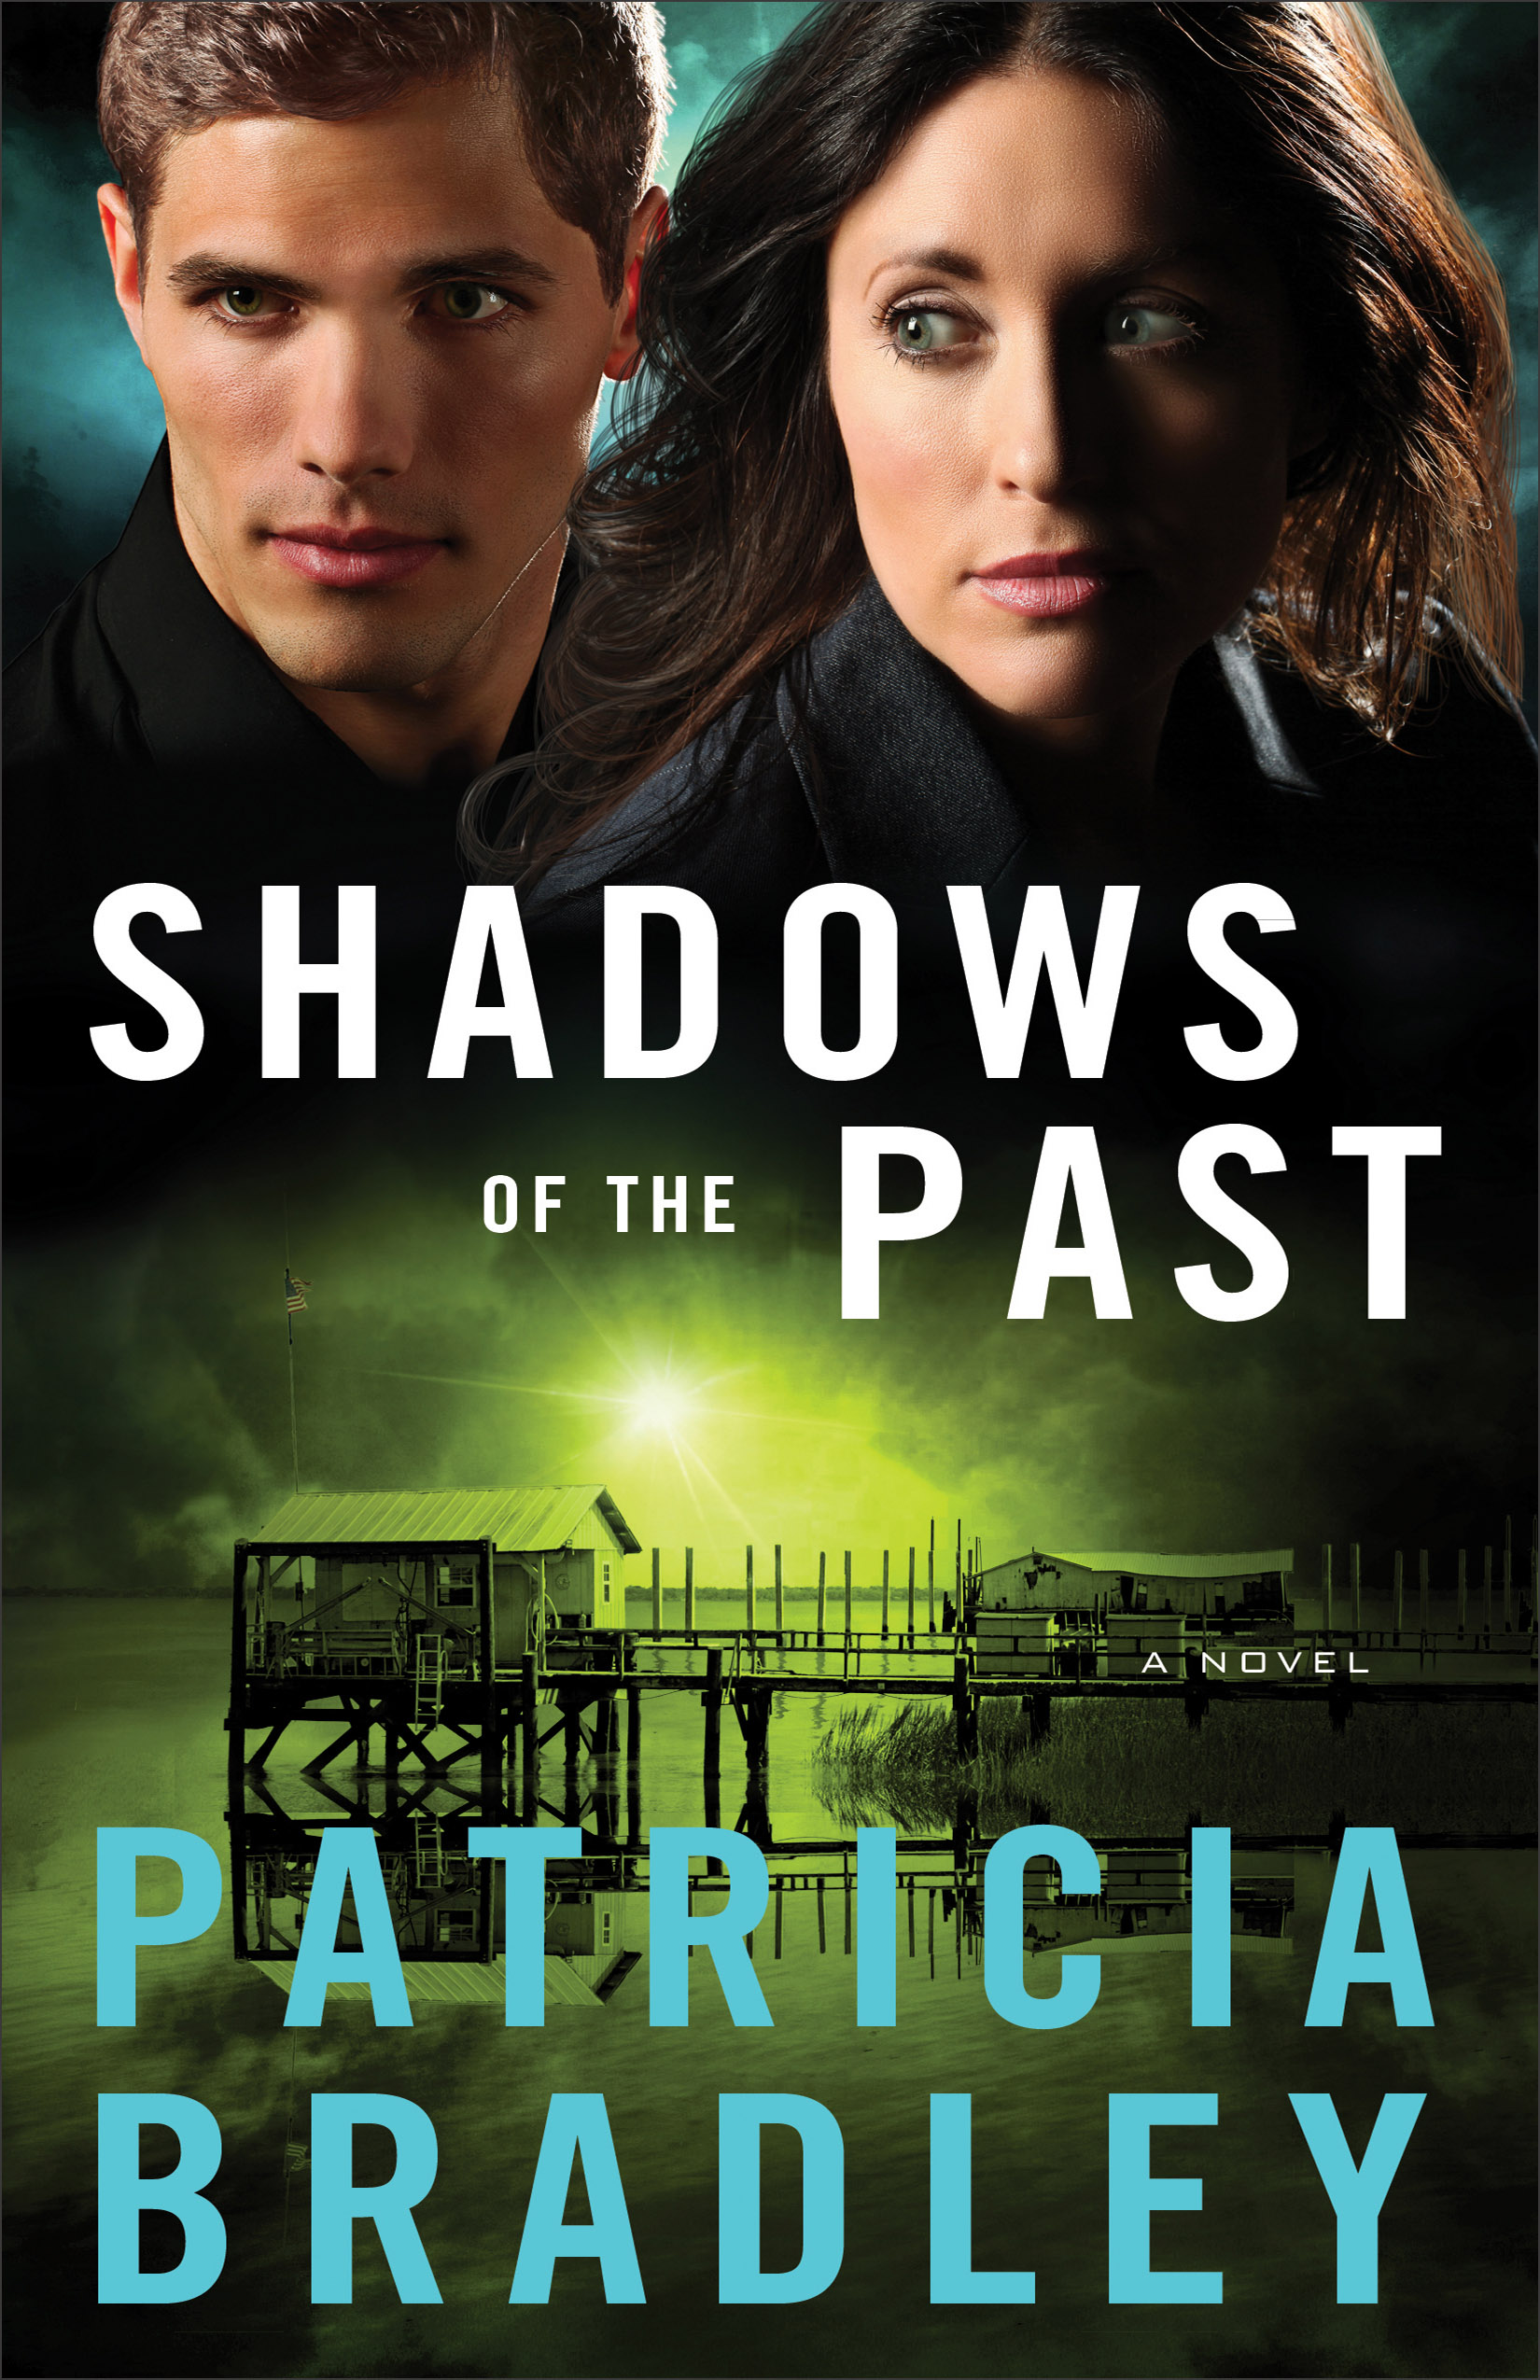 Shadows of the Past by Patricia Bradley